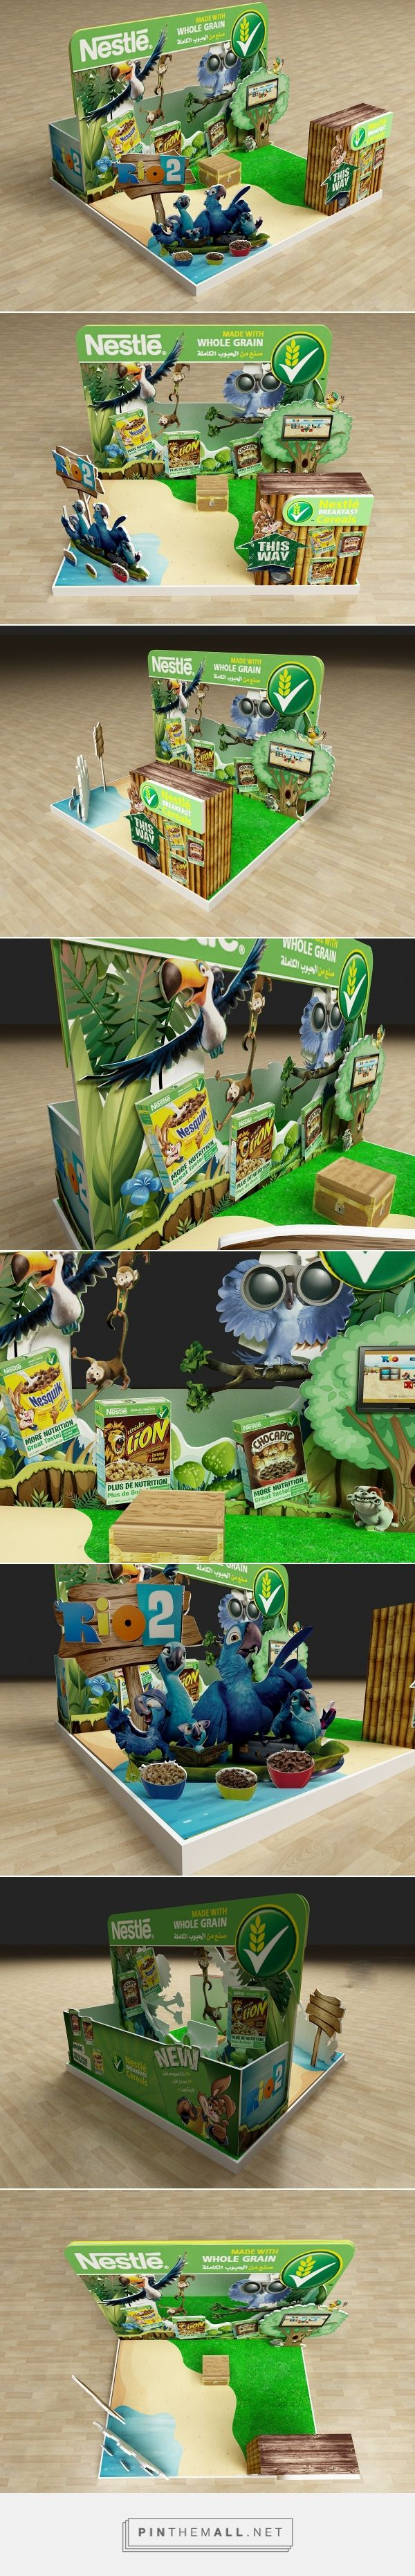 Photo Booth Design Ideas hudson 45 x 50 Nestle Rio2 Activation Booth On Behance Httpswwwbehancenet